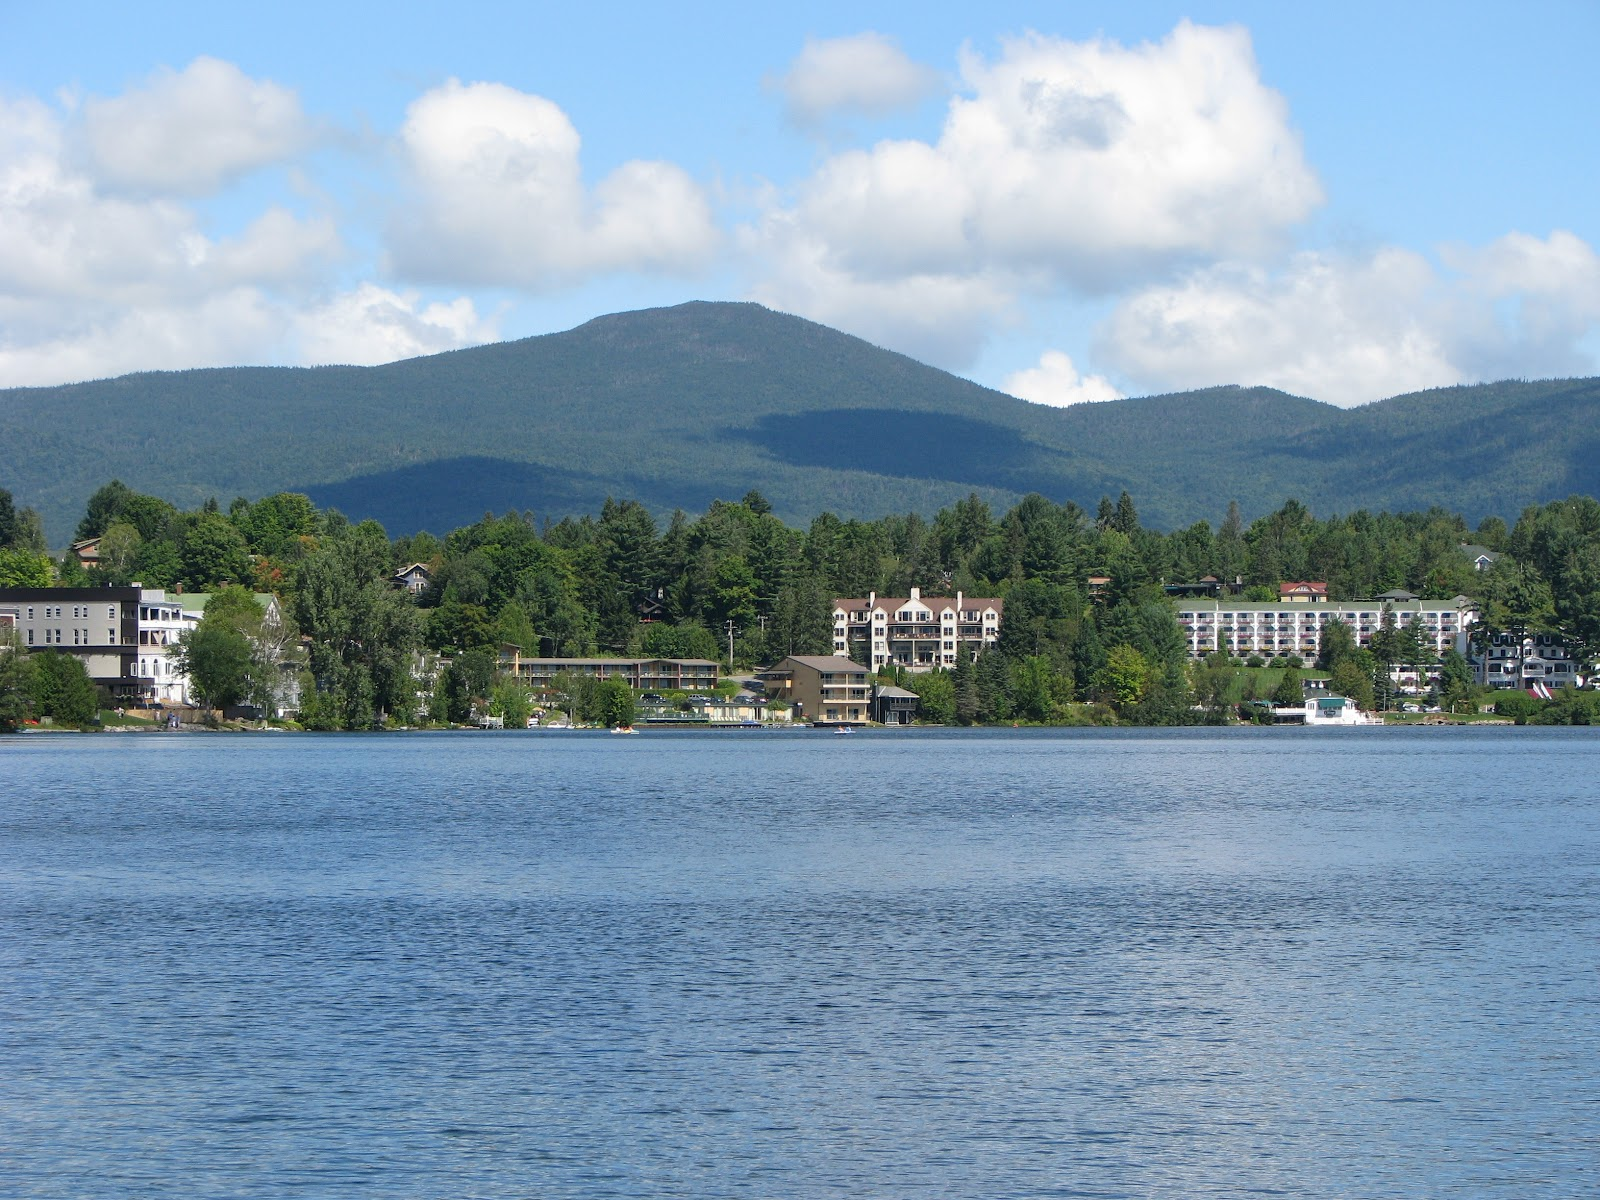 Lake Placid (NY) United States  City new picture : Travel Trip Journey: Lake Placid, New York; United States